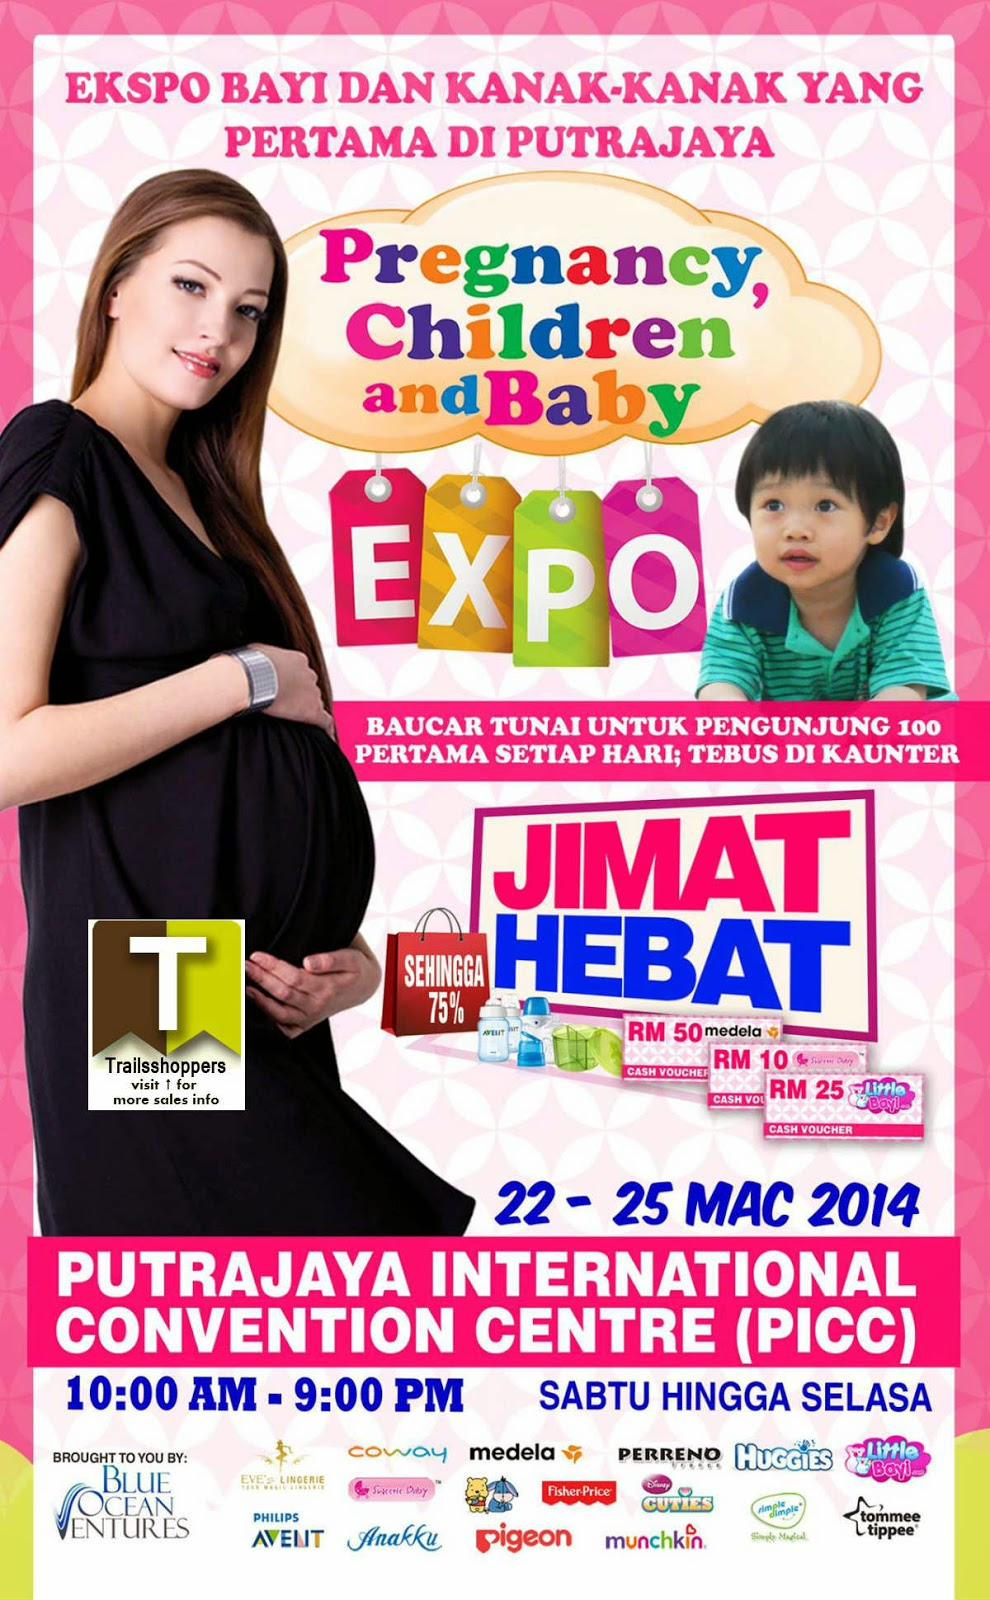 Pregnancy, Children & Baby Expo Putrajaya 2014 International Convention Centre PICC